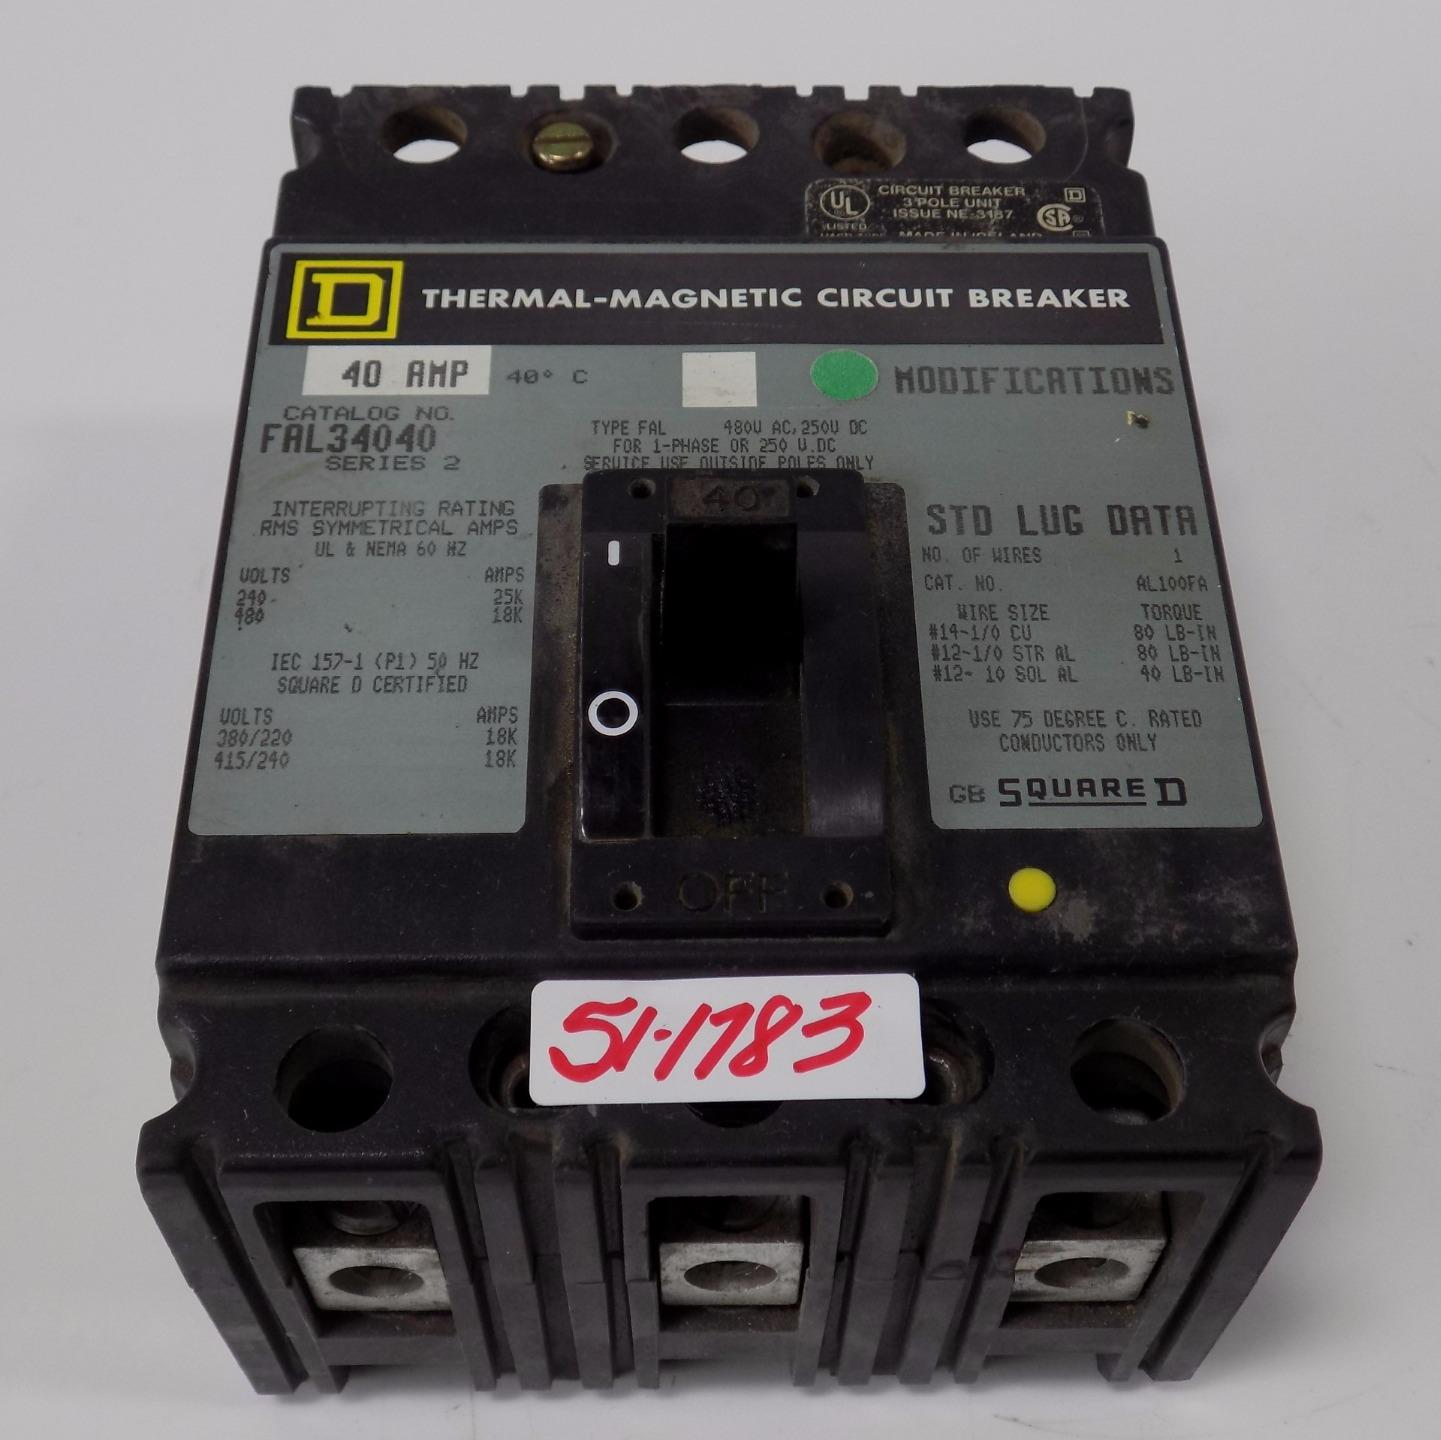 SQUARE D 40A THERMAL-MAGNETIC CIRCUIT BREAKER FAL34040 SER-2 | eBay